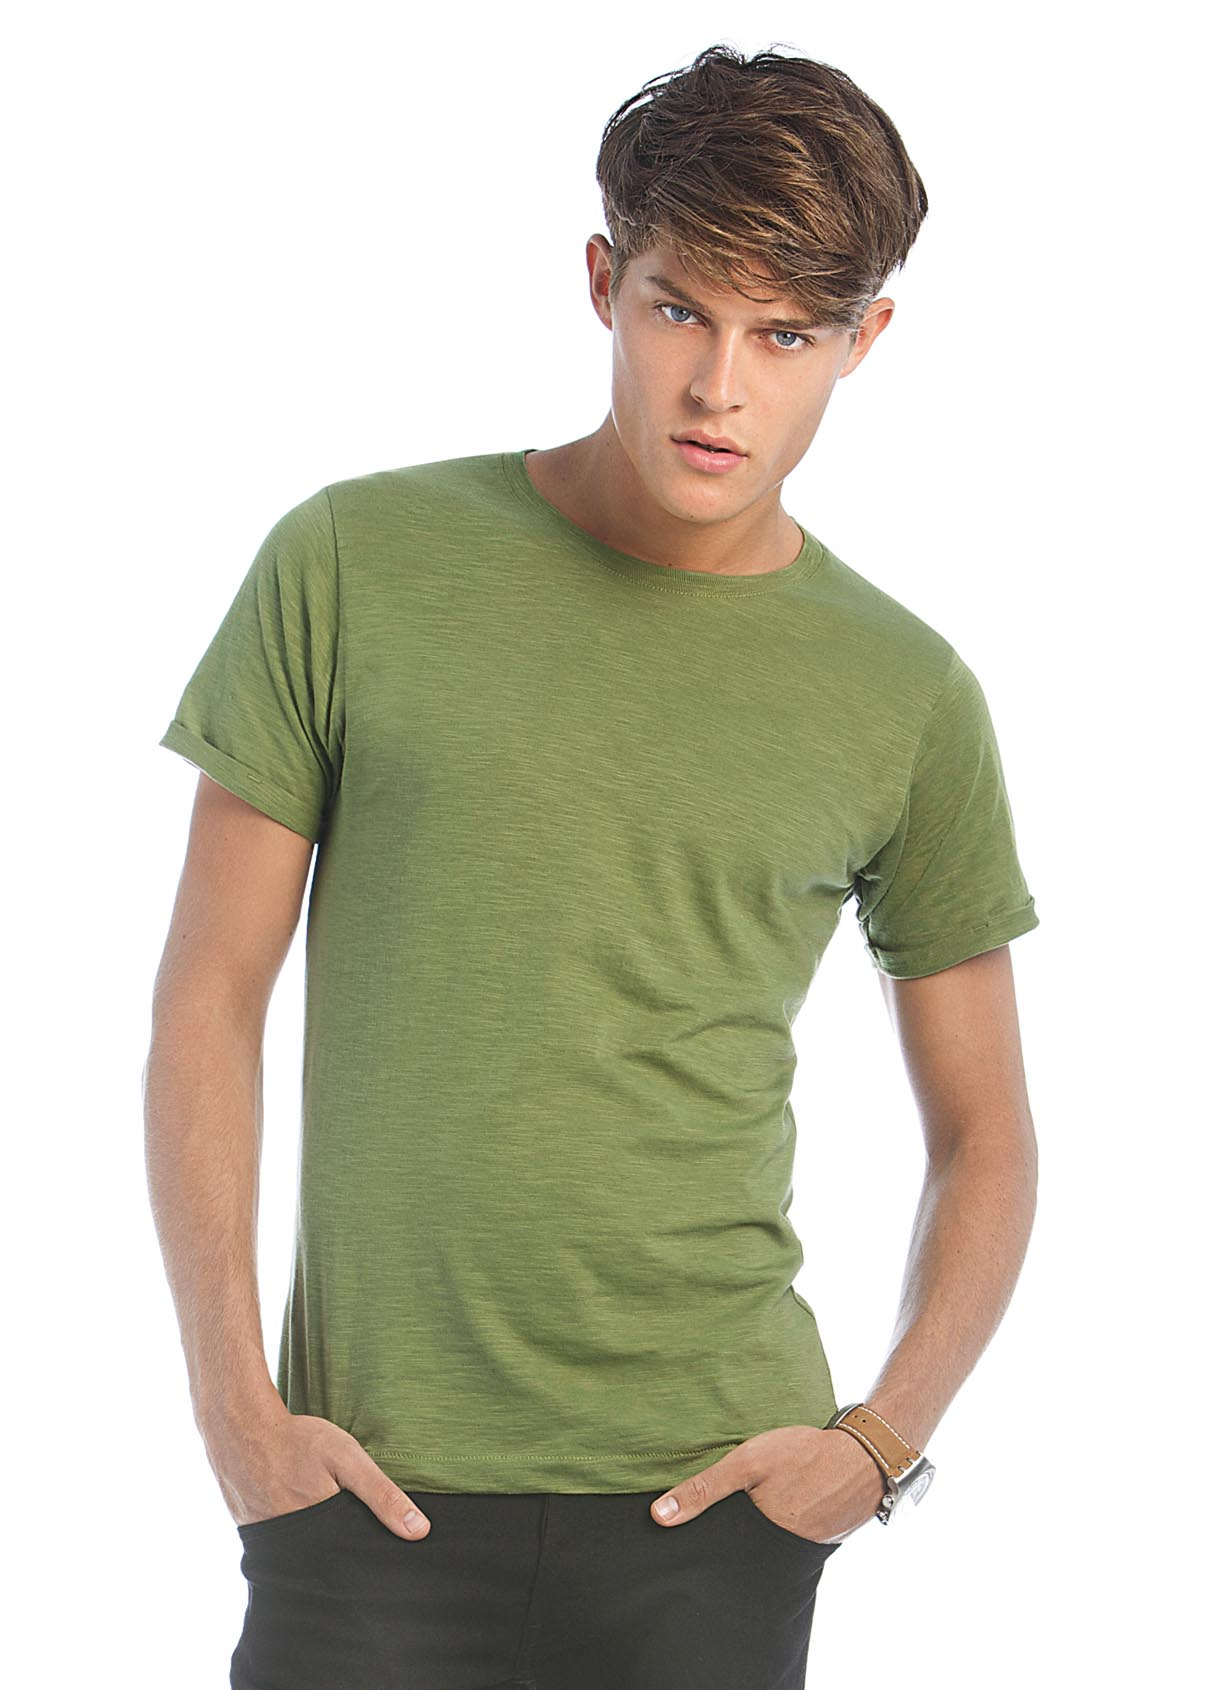 tee shirt homme too chic personnalisable